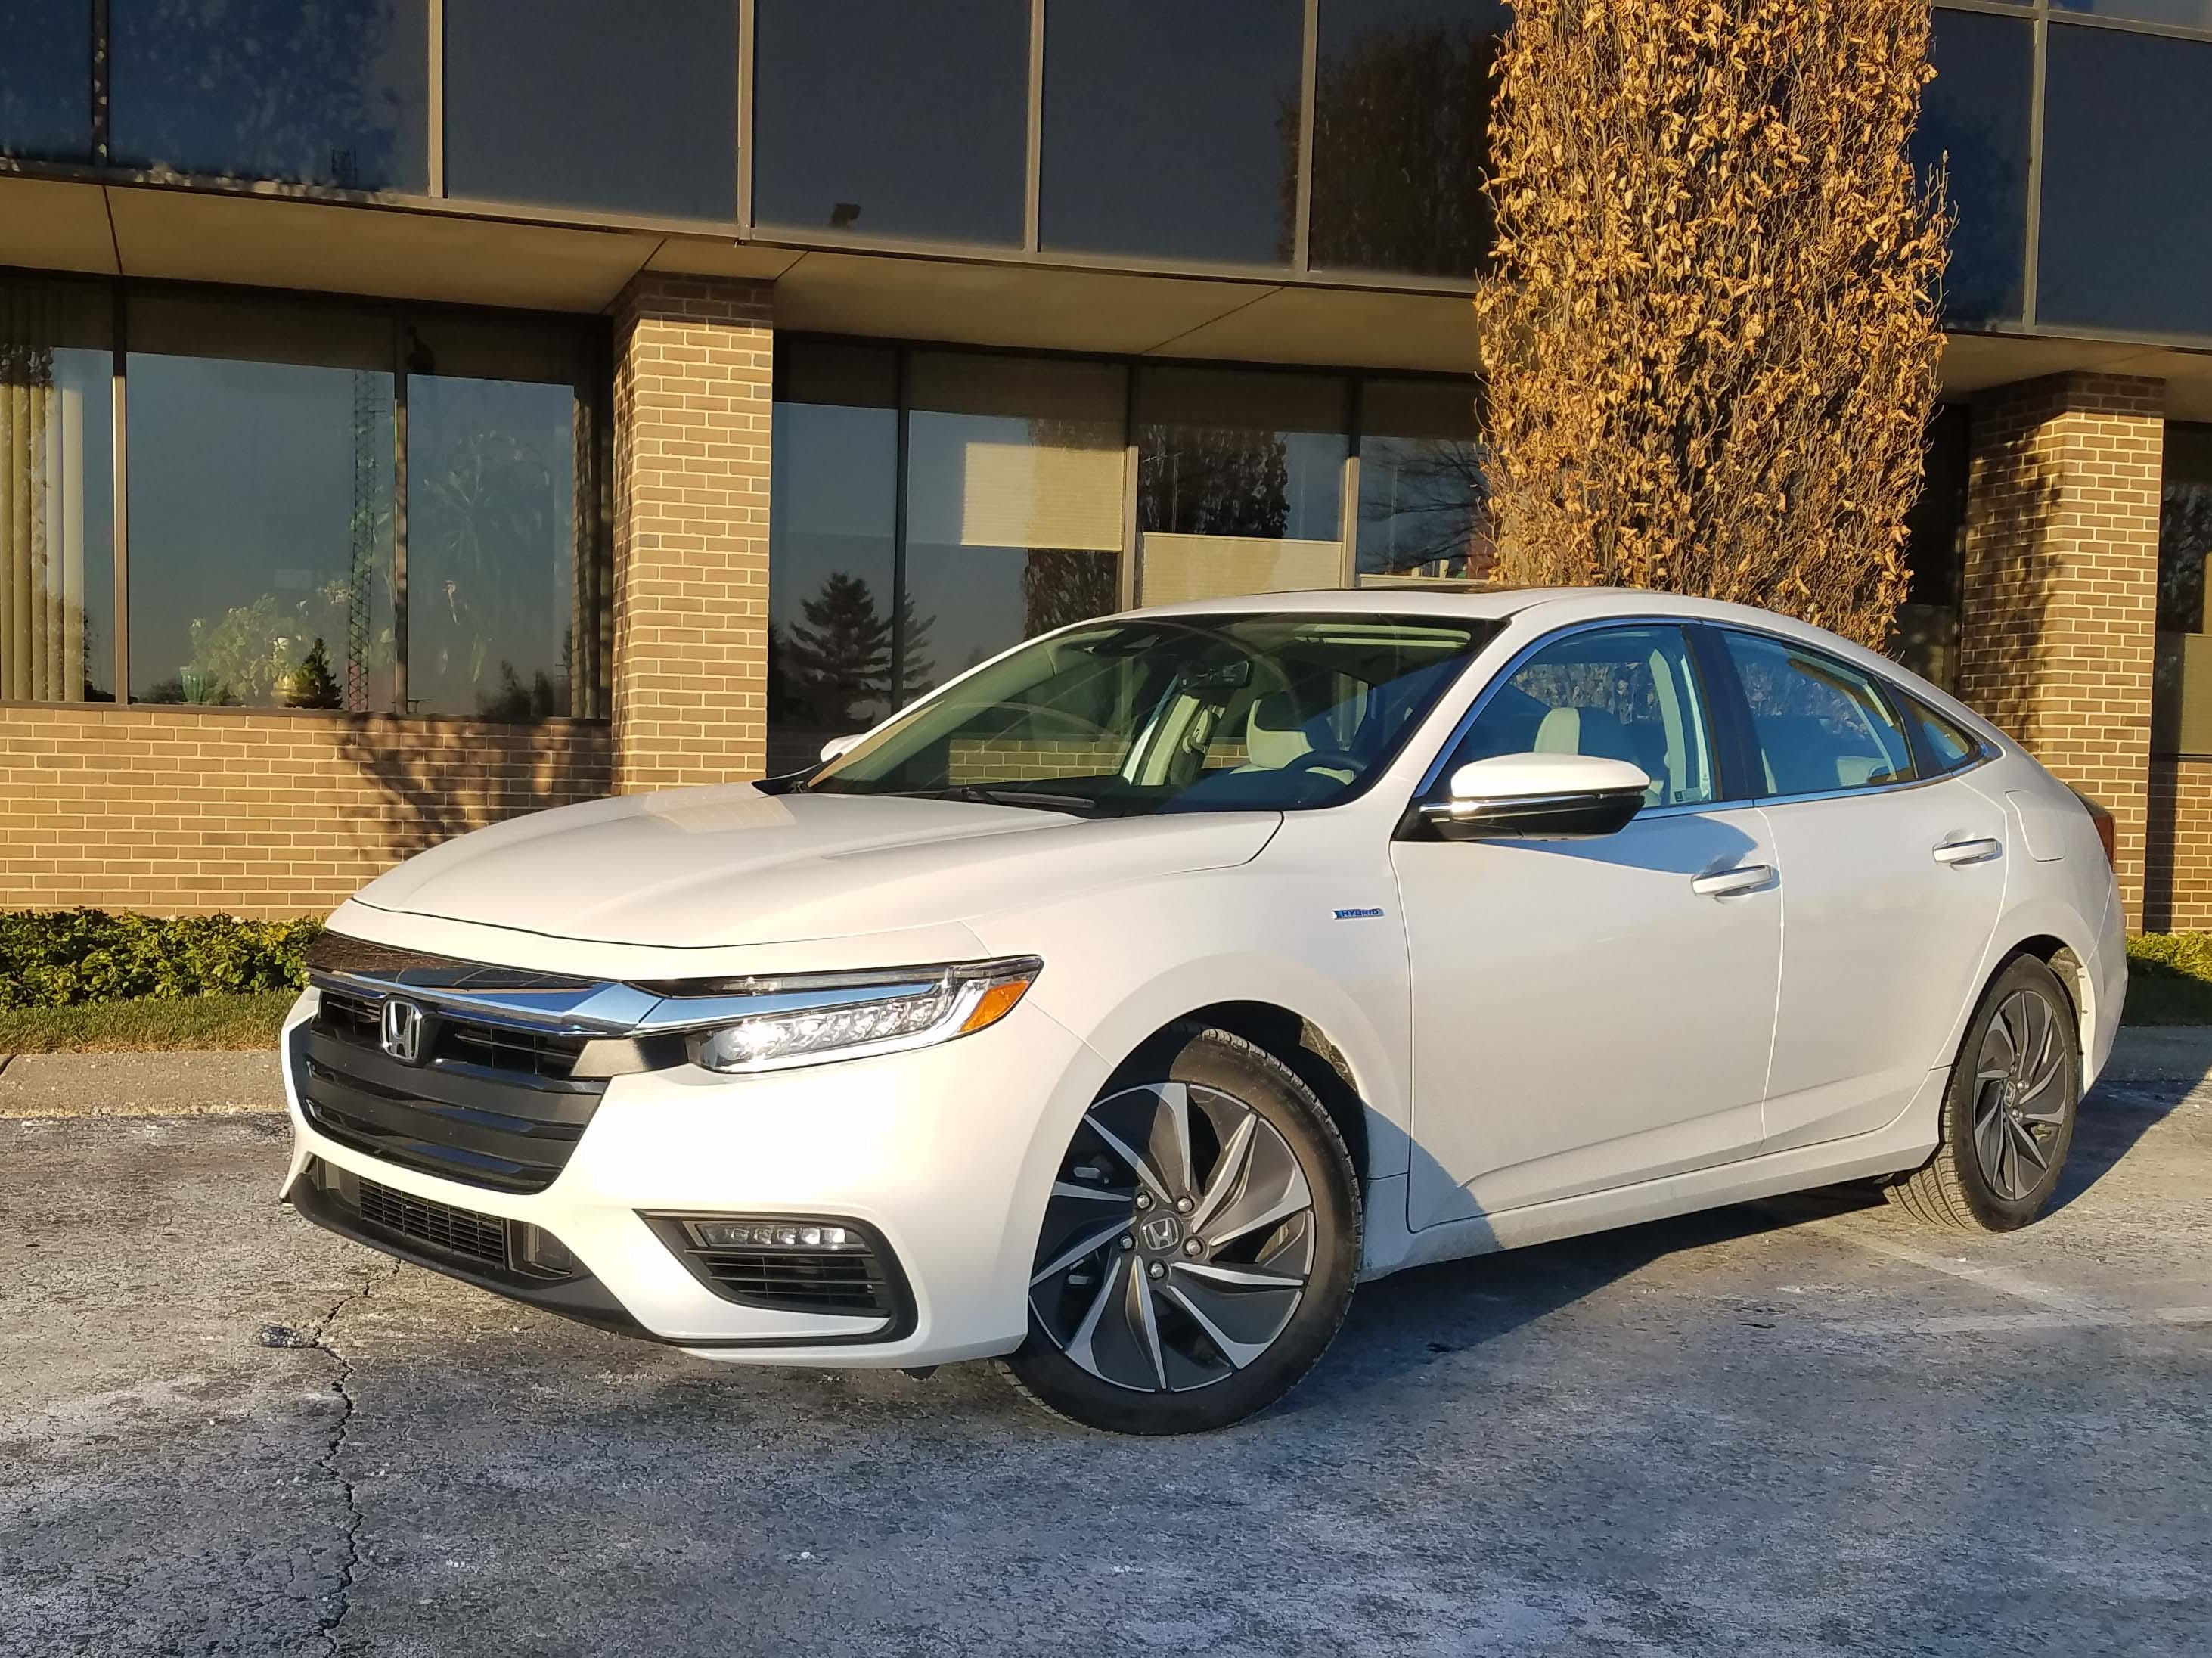 Insight 3.0. The 2019 version is the badge's third effort. While previous efforts have achieved fuel economy of 60-plus mpg, the more modest (48 mpg) Insight has more mainstream looks and amenities inside.